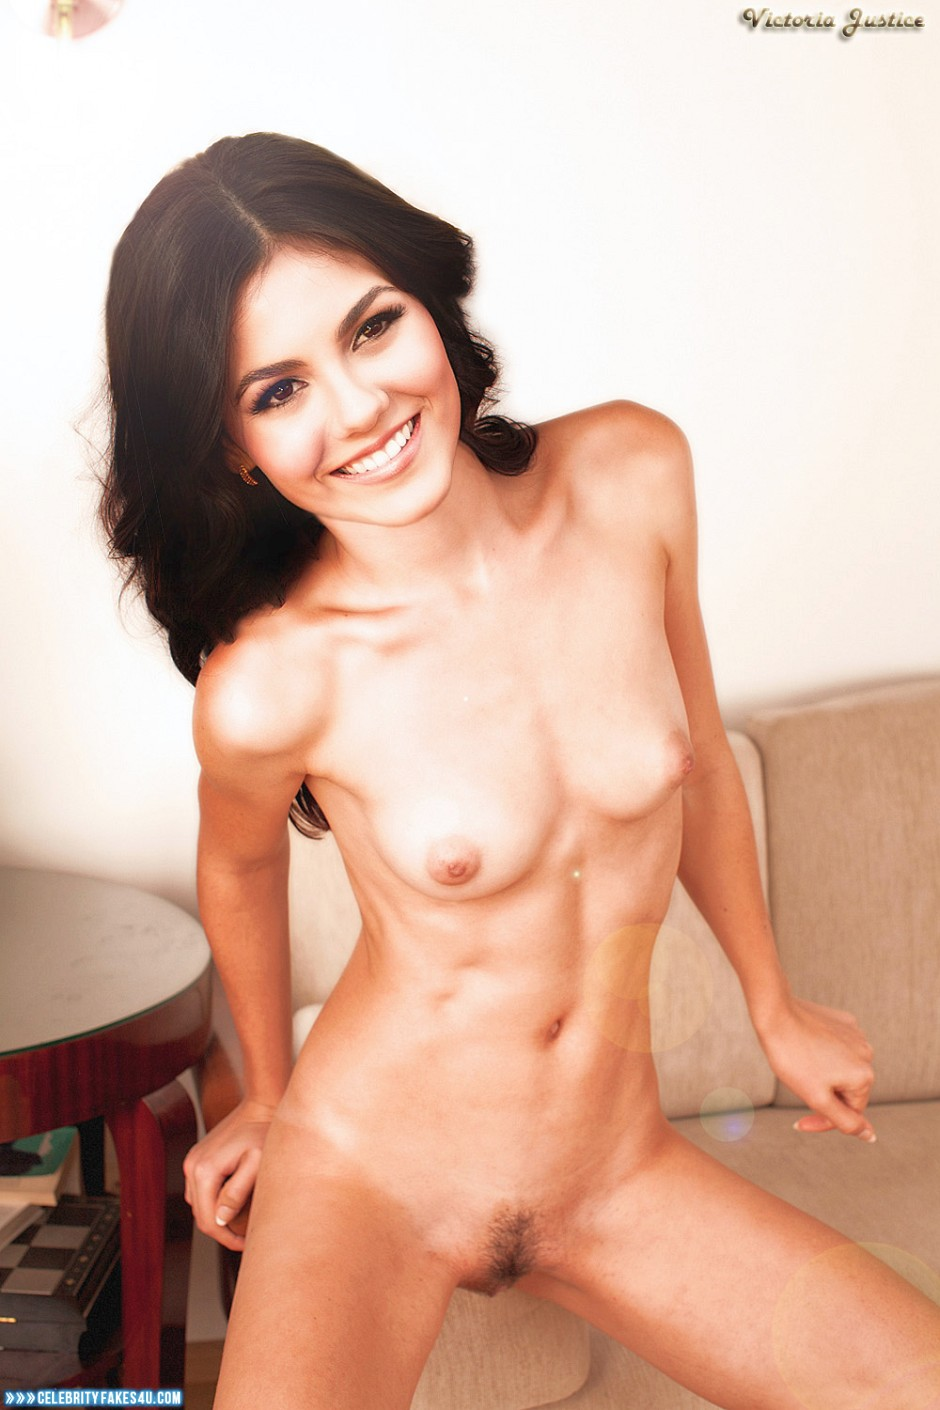 Victoria Justice Fake, Naked Body, Nude, Tits, Porn